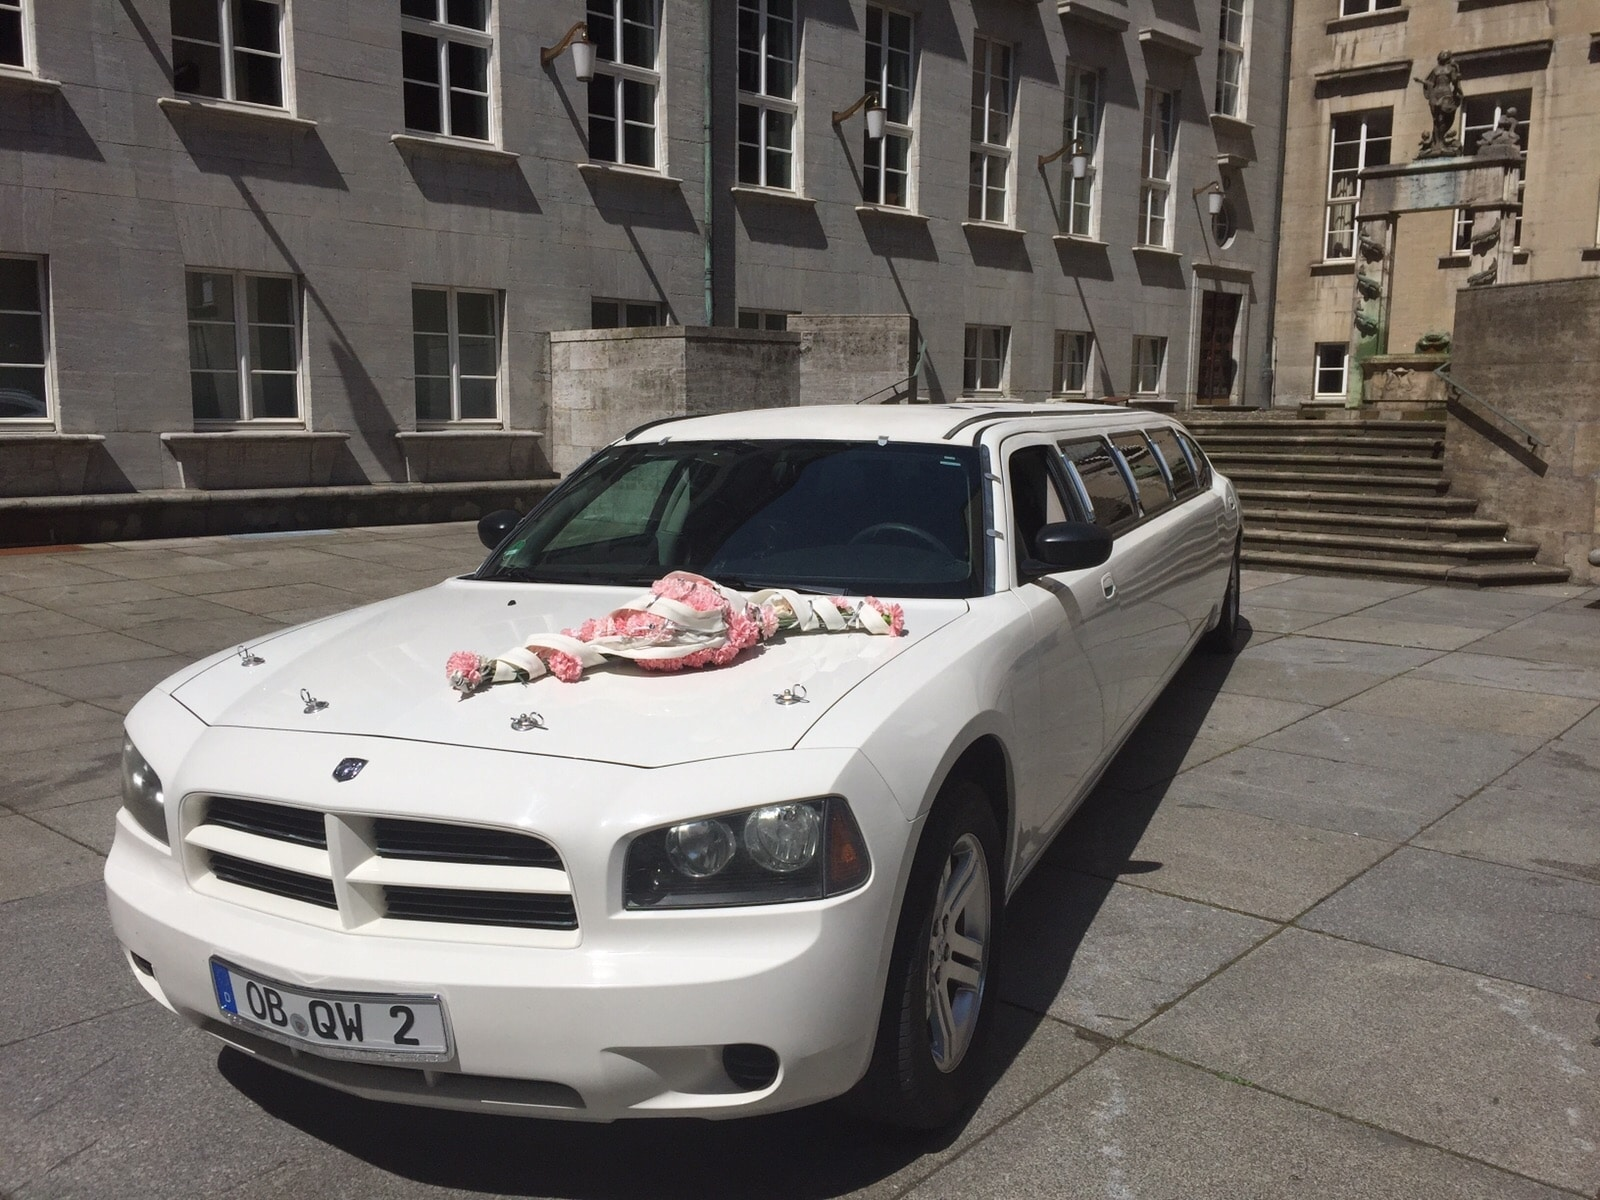 Dodge Charger-Stretch weiss mieten bei Florida Exclusiv Car in Oberhausen